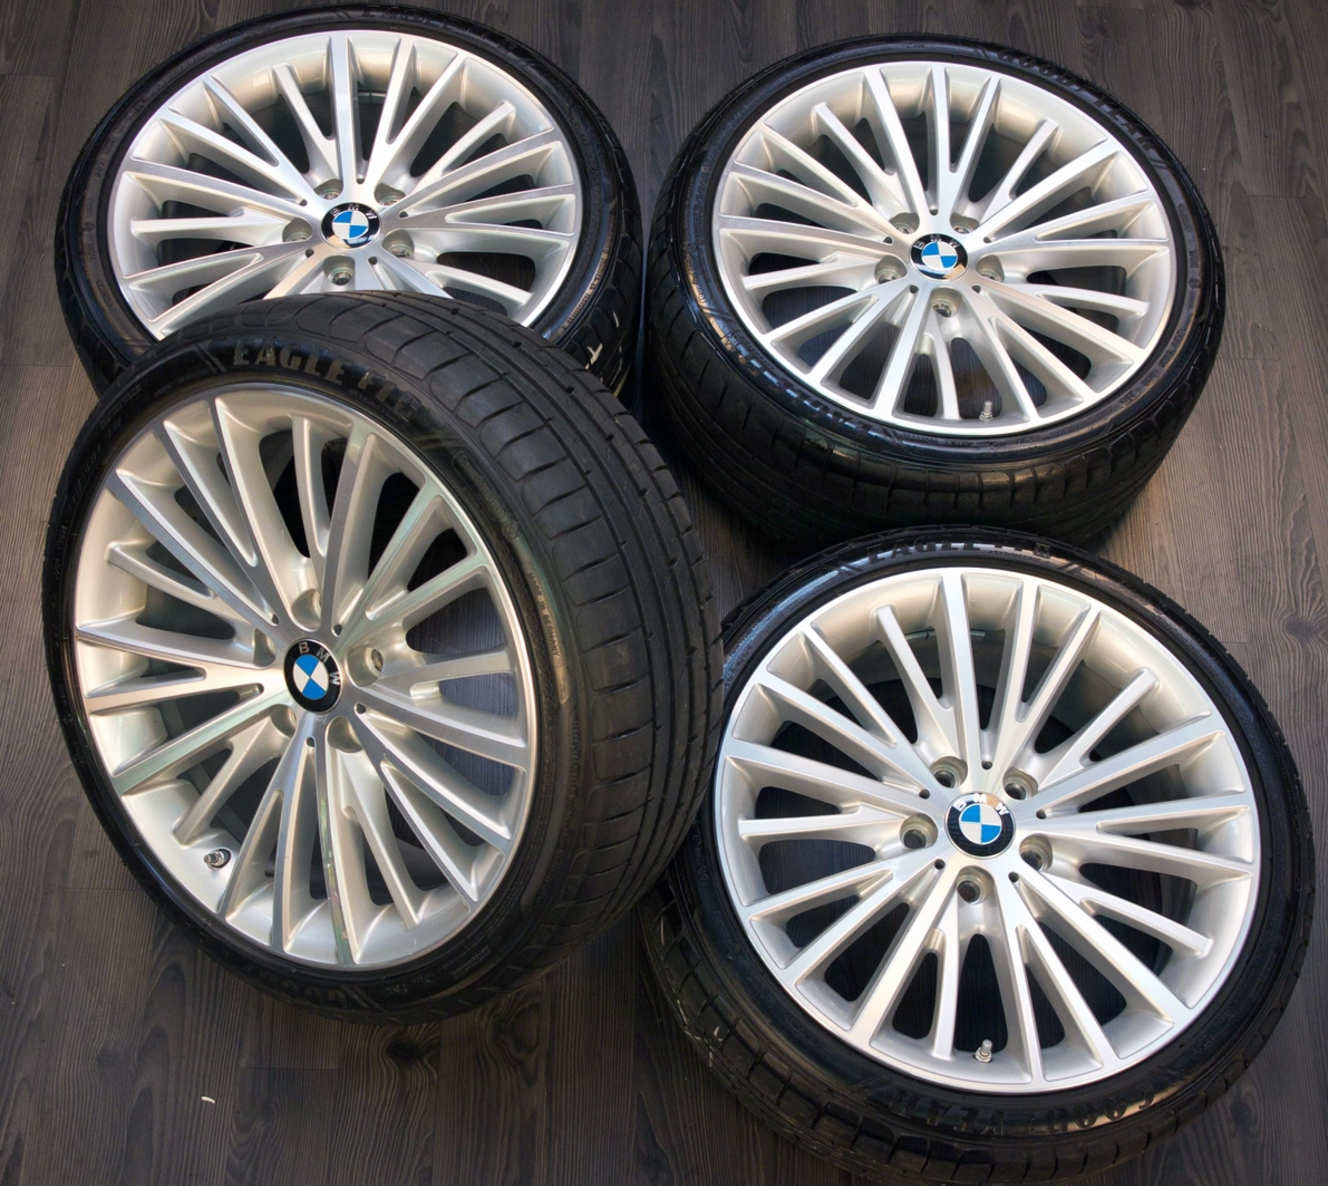 Bmw Z4 35is Price: TRADE: 403m Wheels For A Set Of 399 Luxury Wheels